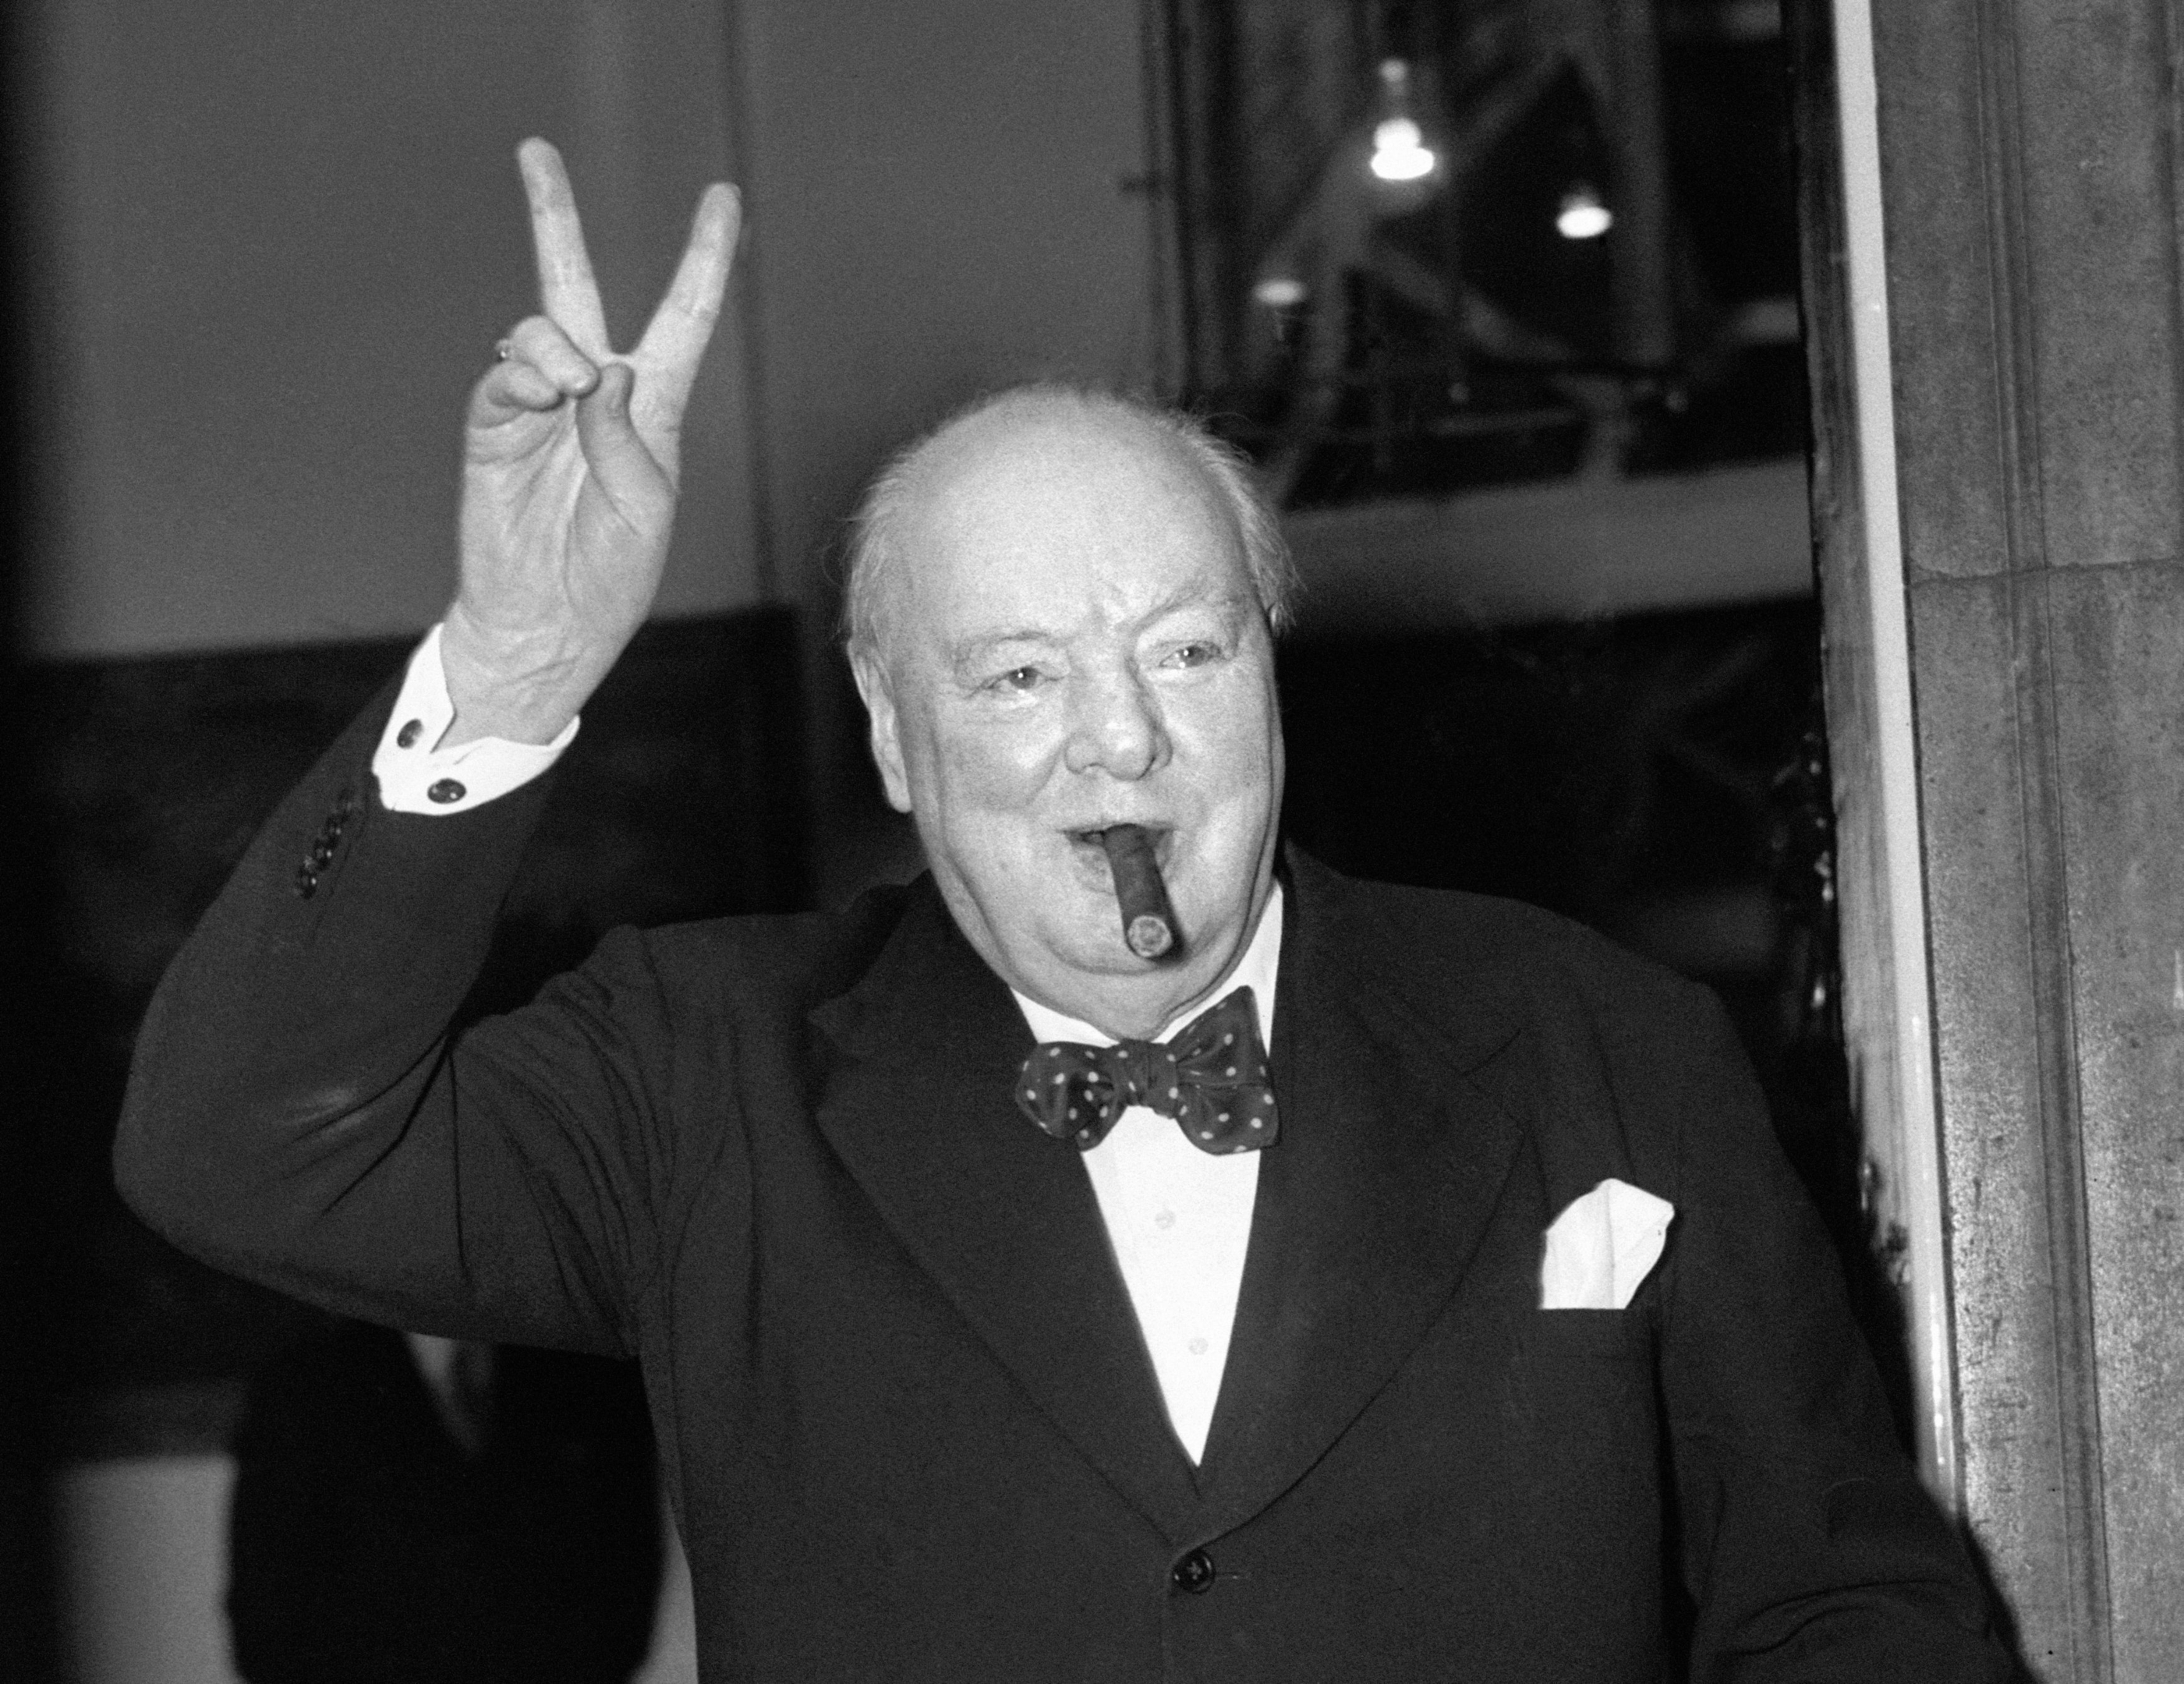 Sir Winston Churchill, as the existence of alien life on other planets may not have been the most pressing issue facing him in 1939, with Europe on the brink of war, but it was something he thought about deeply, a newly unearthed essay written by the wartime leader has revealed.